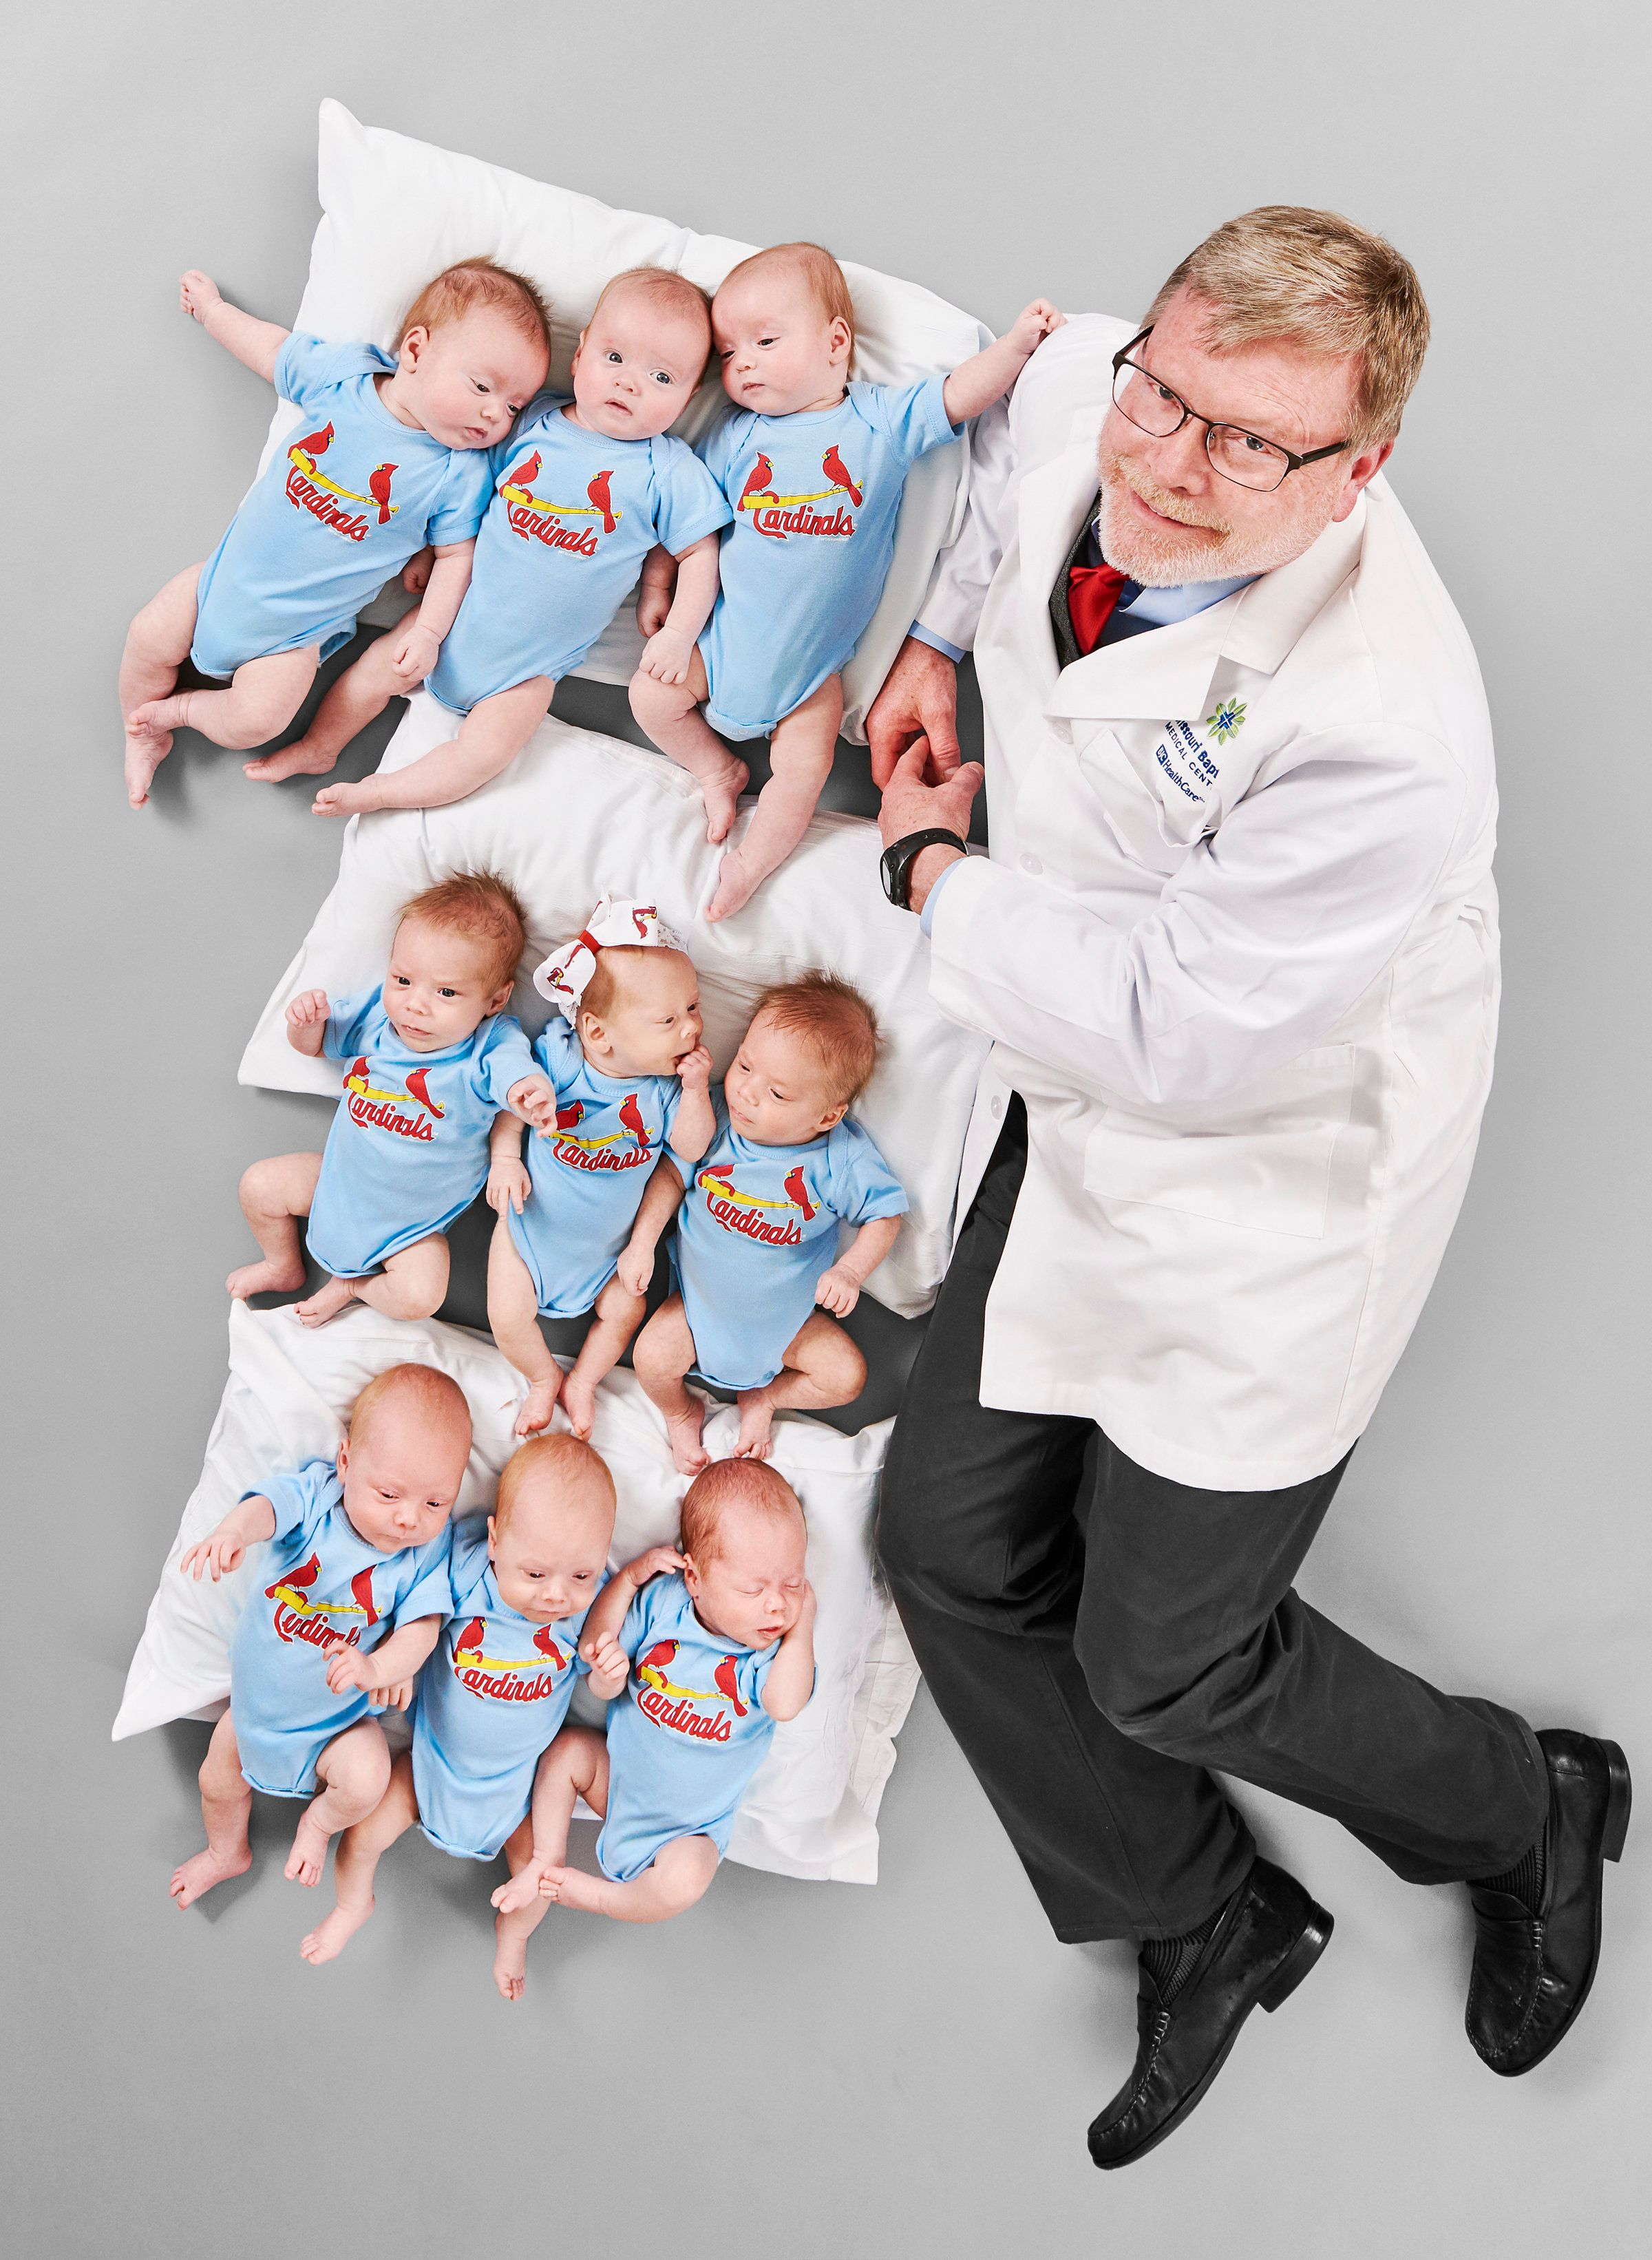 Dr. Michael Paul delivered three sets of triplets in six weeks.